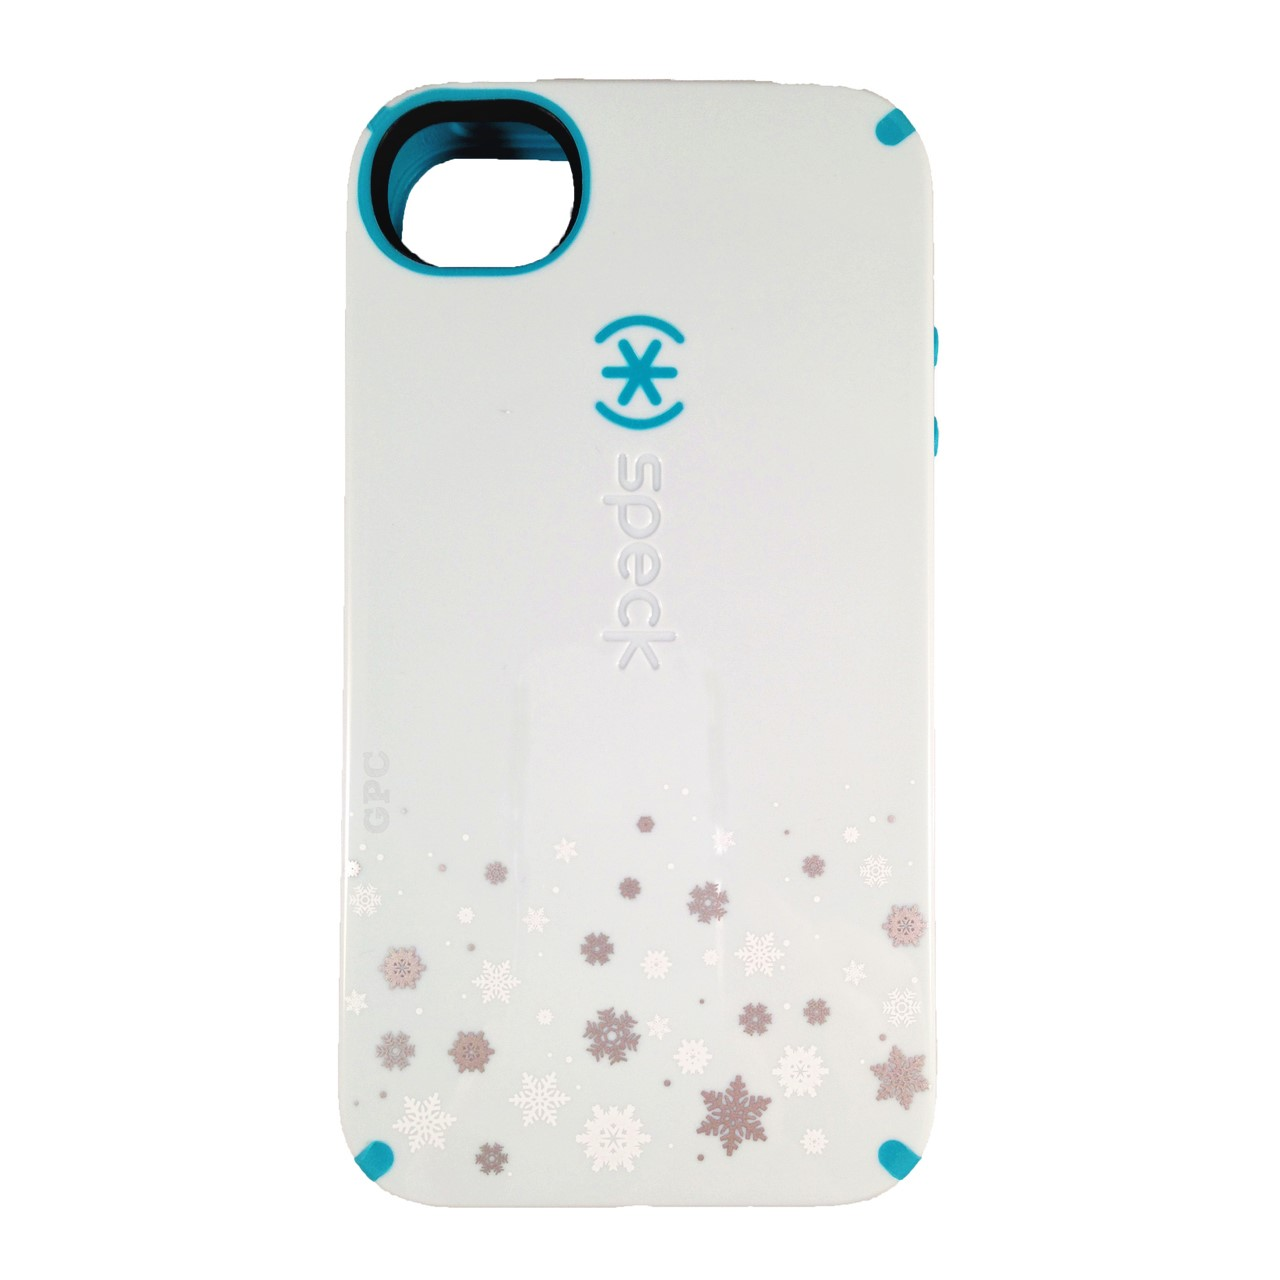 SPECK CandyShell Series Case for Apple iPhone 4/4S - Snow Fresh (Blue/Peacock)